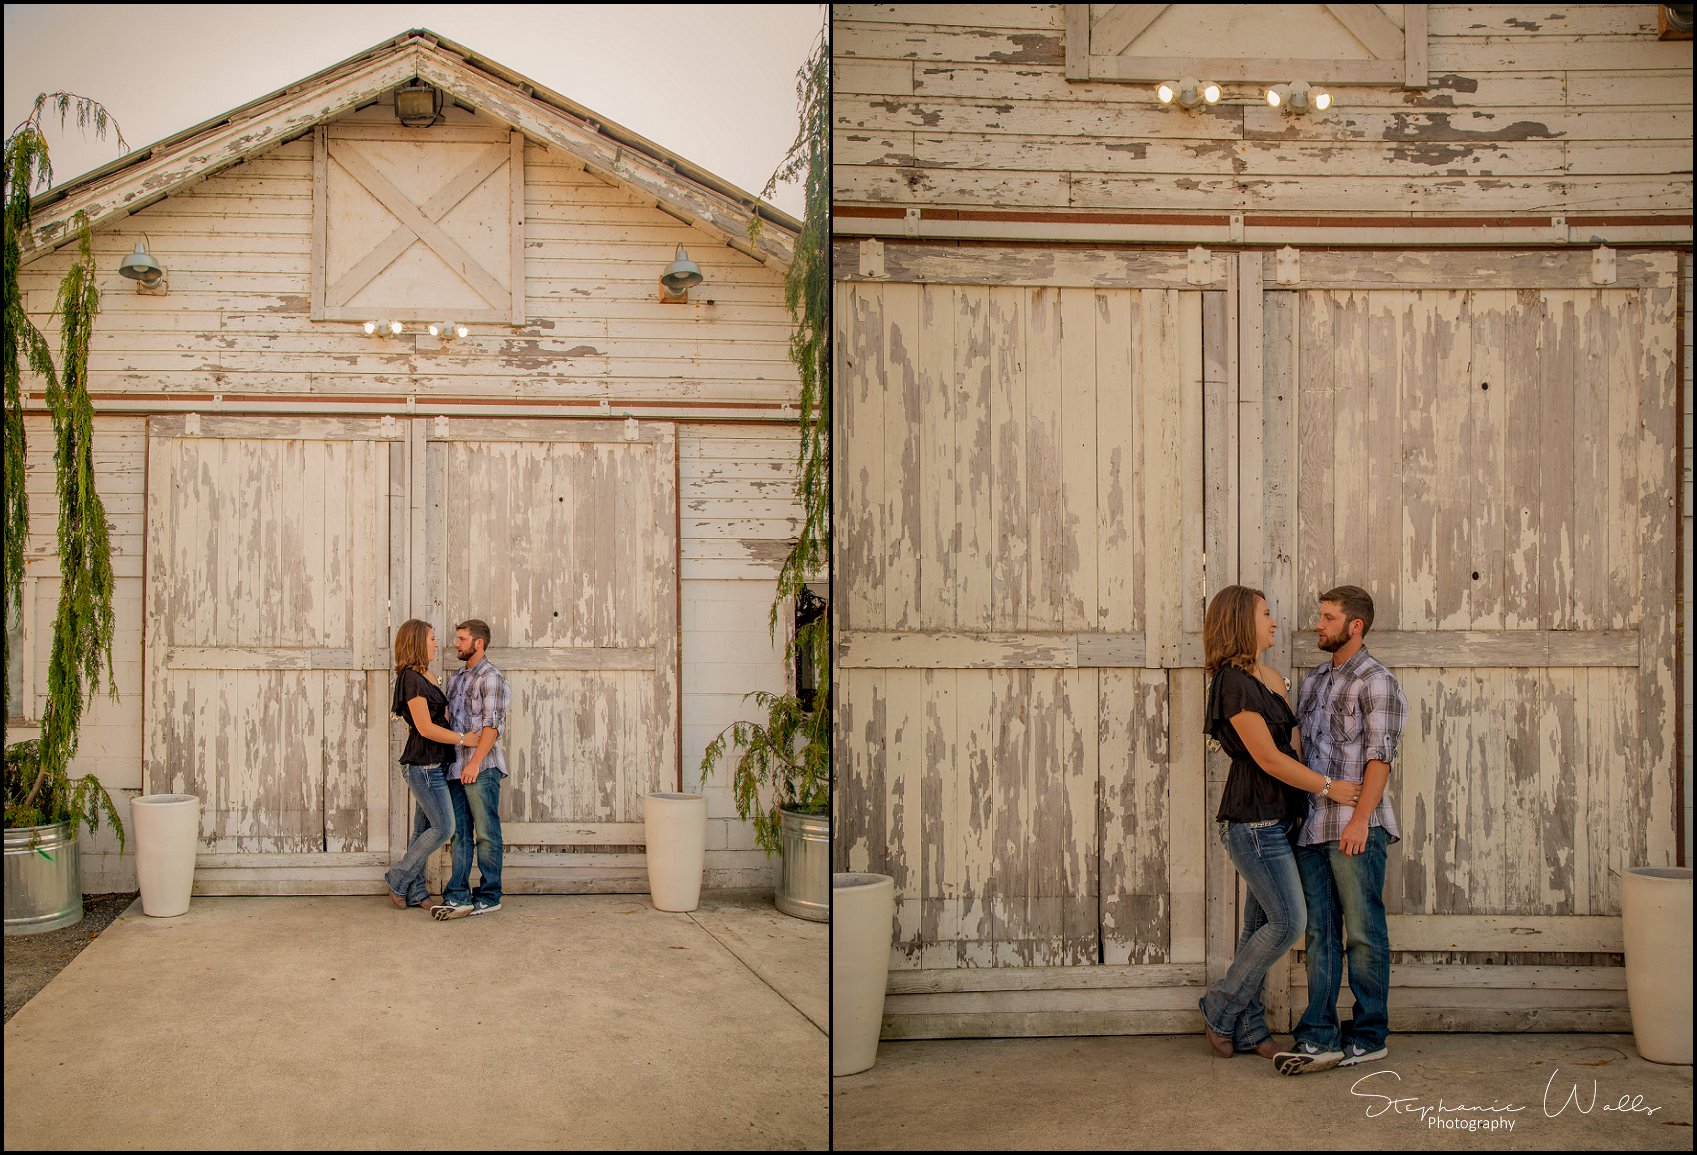 KELSIE & BRYCE | DAIRYLAND + MUKILTEO BEACH ENGAGEMENT SESSION { SNOHOMISH WEDDING PHOTOGRAPHER }